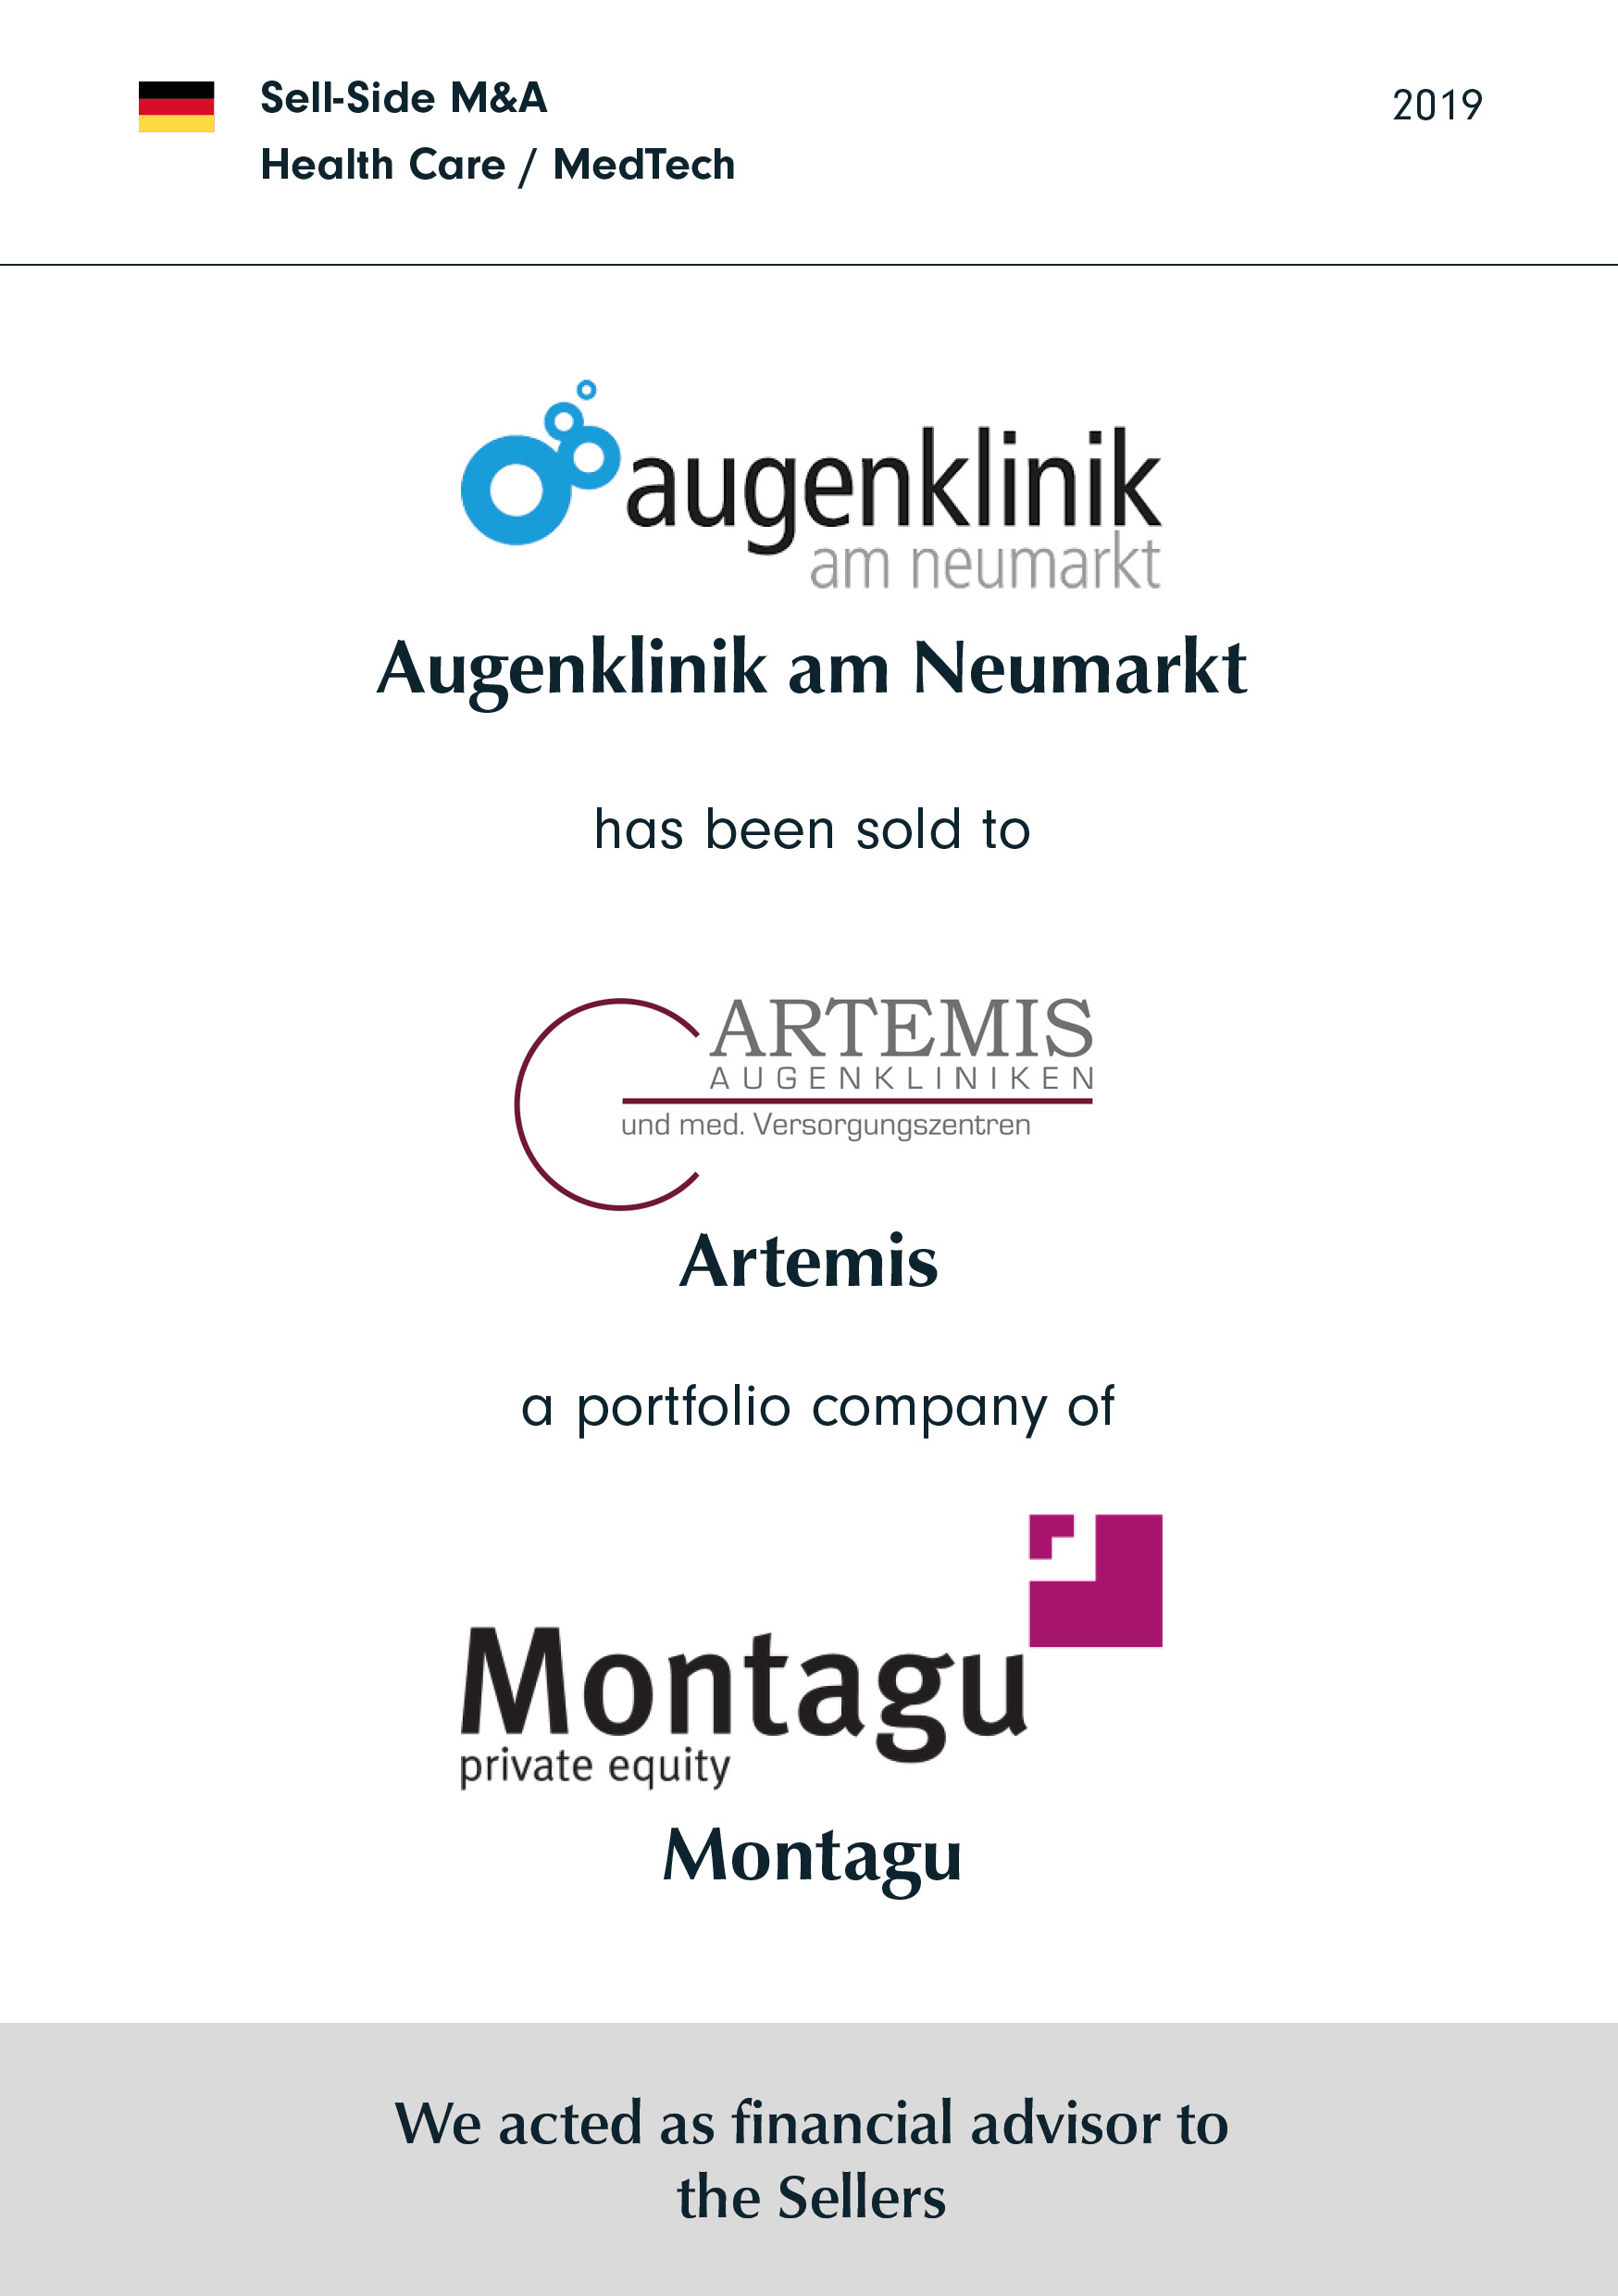 Augenklinik am Neumarkt | has been sold to | ARTEMIS | a portfolio company of | MONTAGU